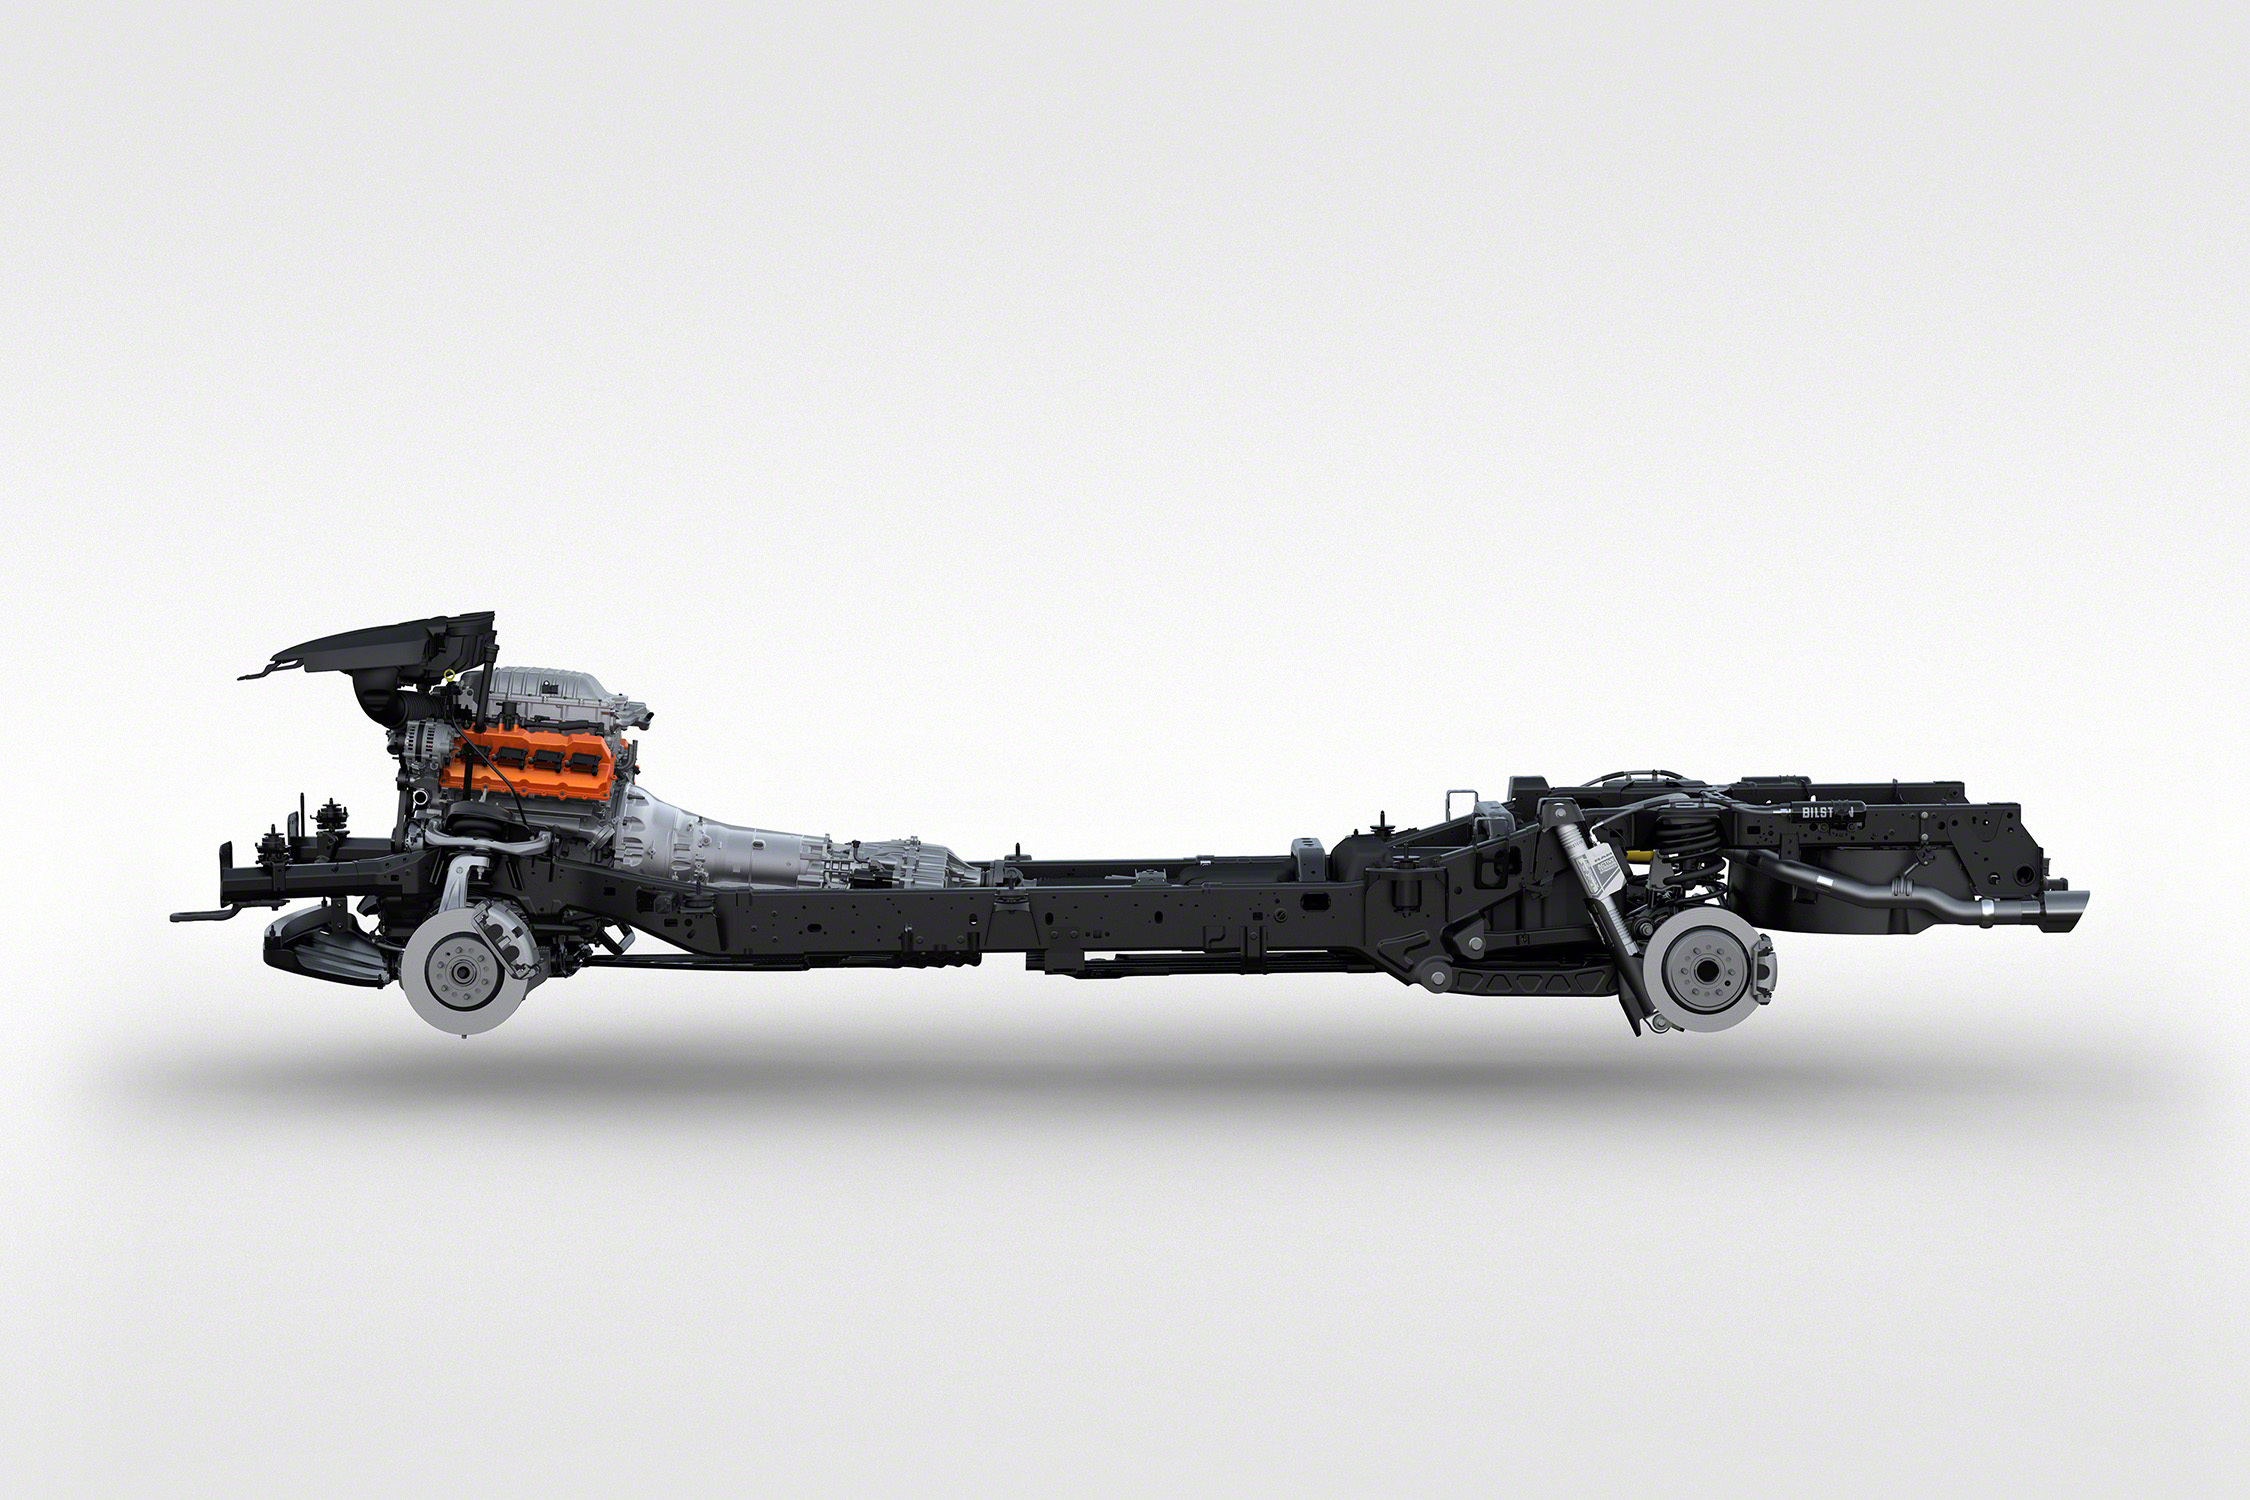 2021 Ram 1500 TRX chassis with brakes